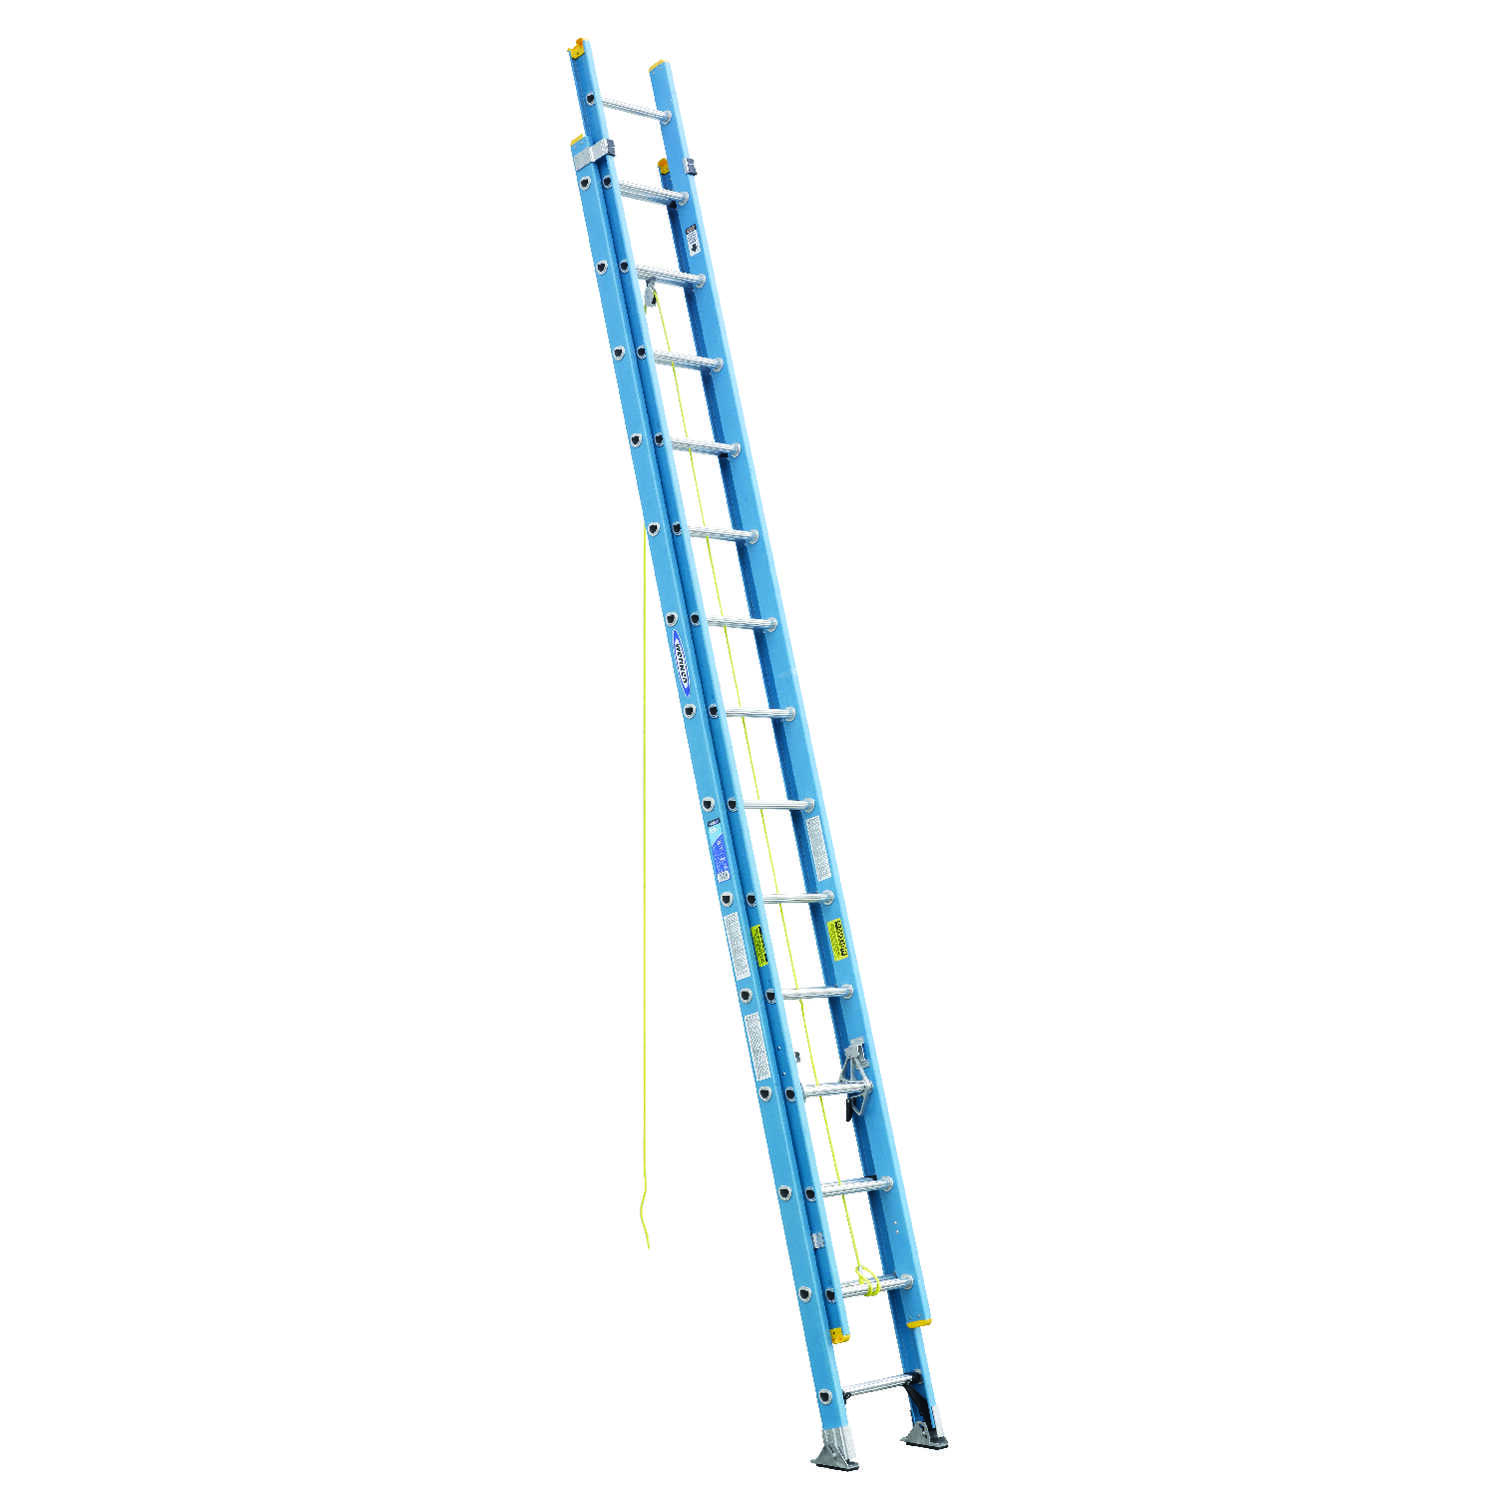 Werner  28 ft. H x 18.13 in. W Fiberglass  Extension Ladder  Type I  250 lb.